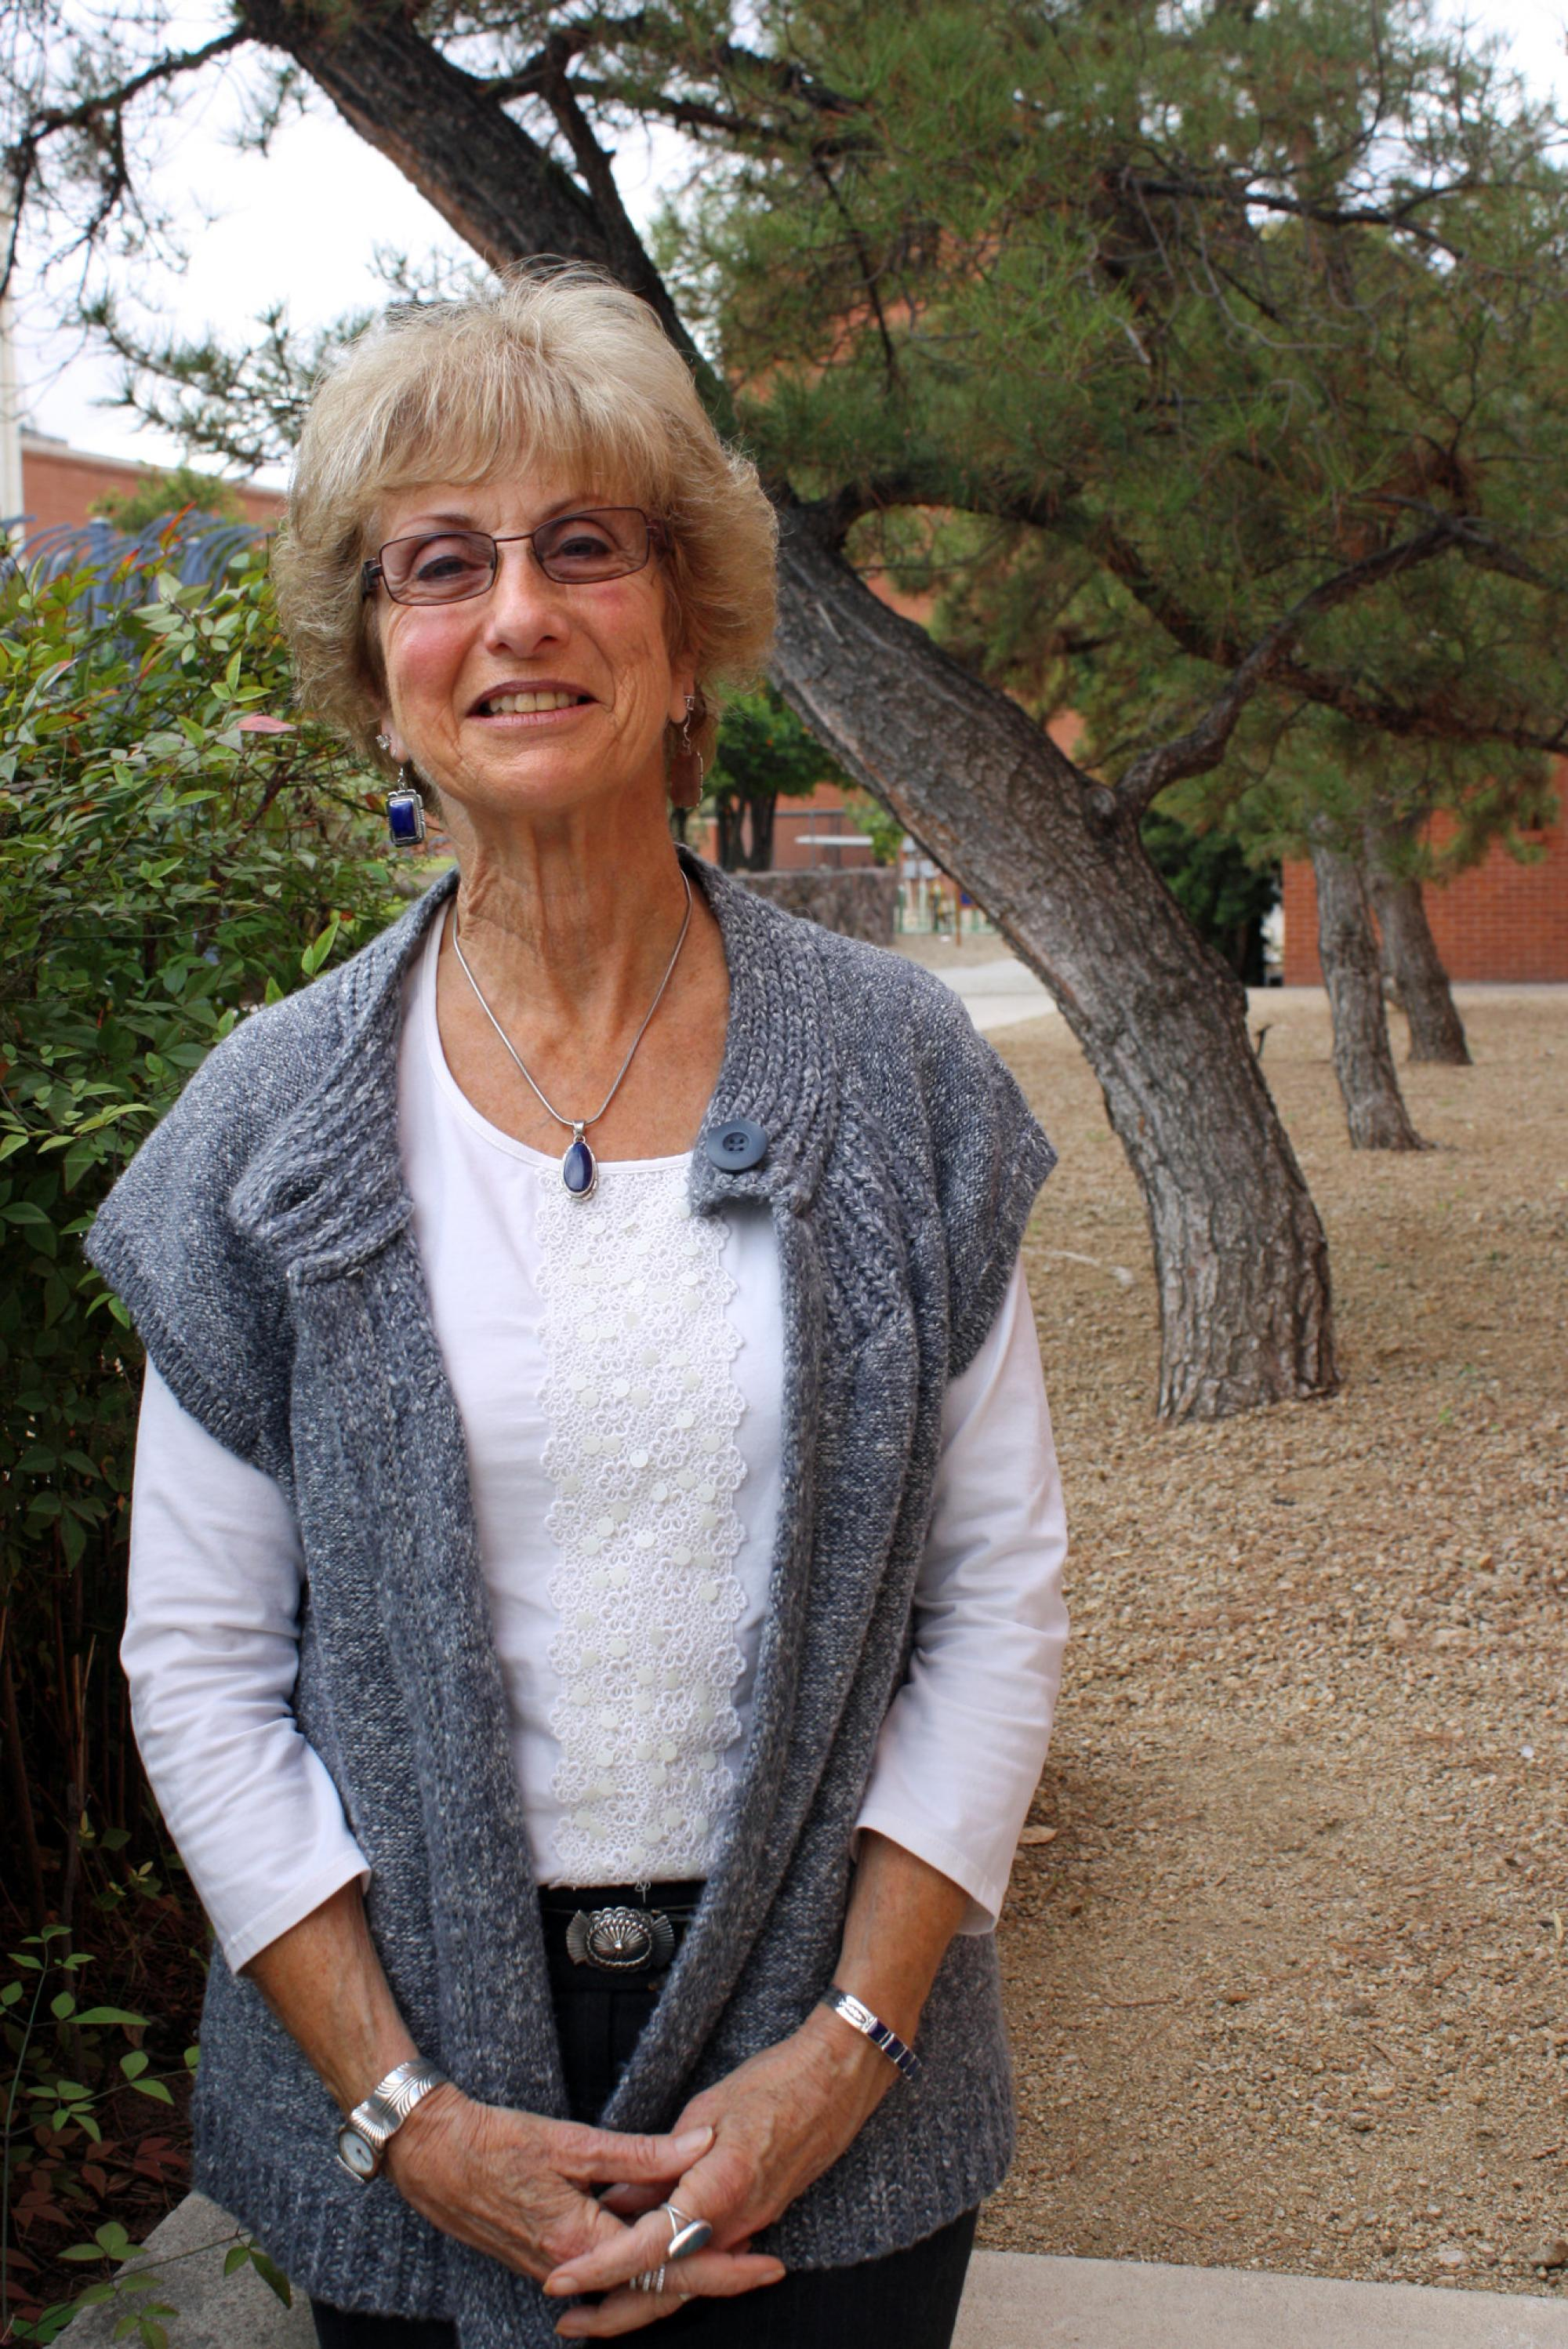 Sheri Bauman, a professor in the UA Department of Disability and Psychoeducational Studies, is a member of the 2014-15 cohort.